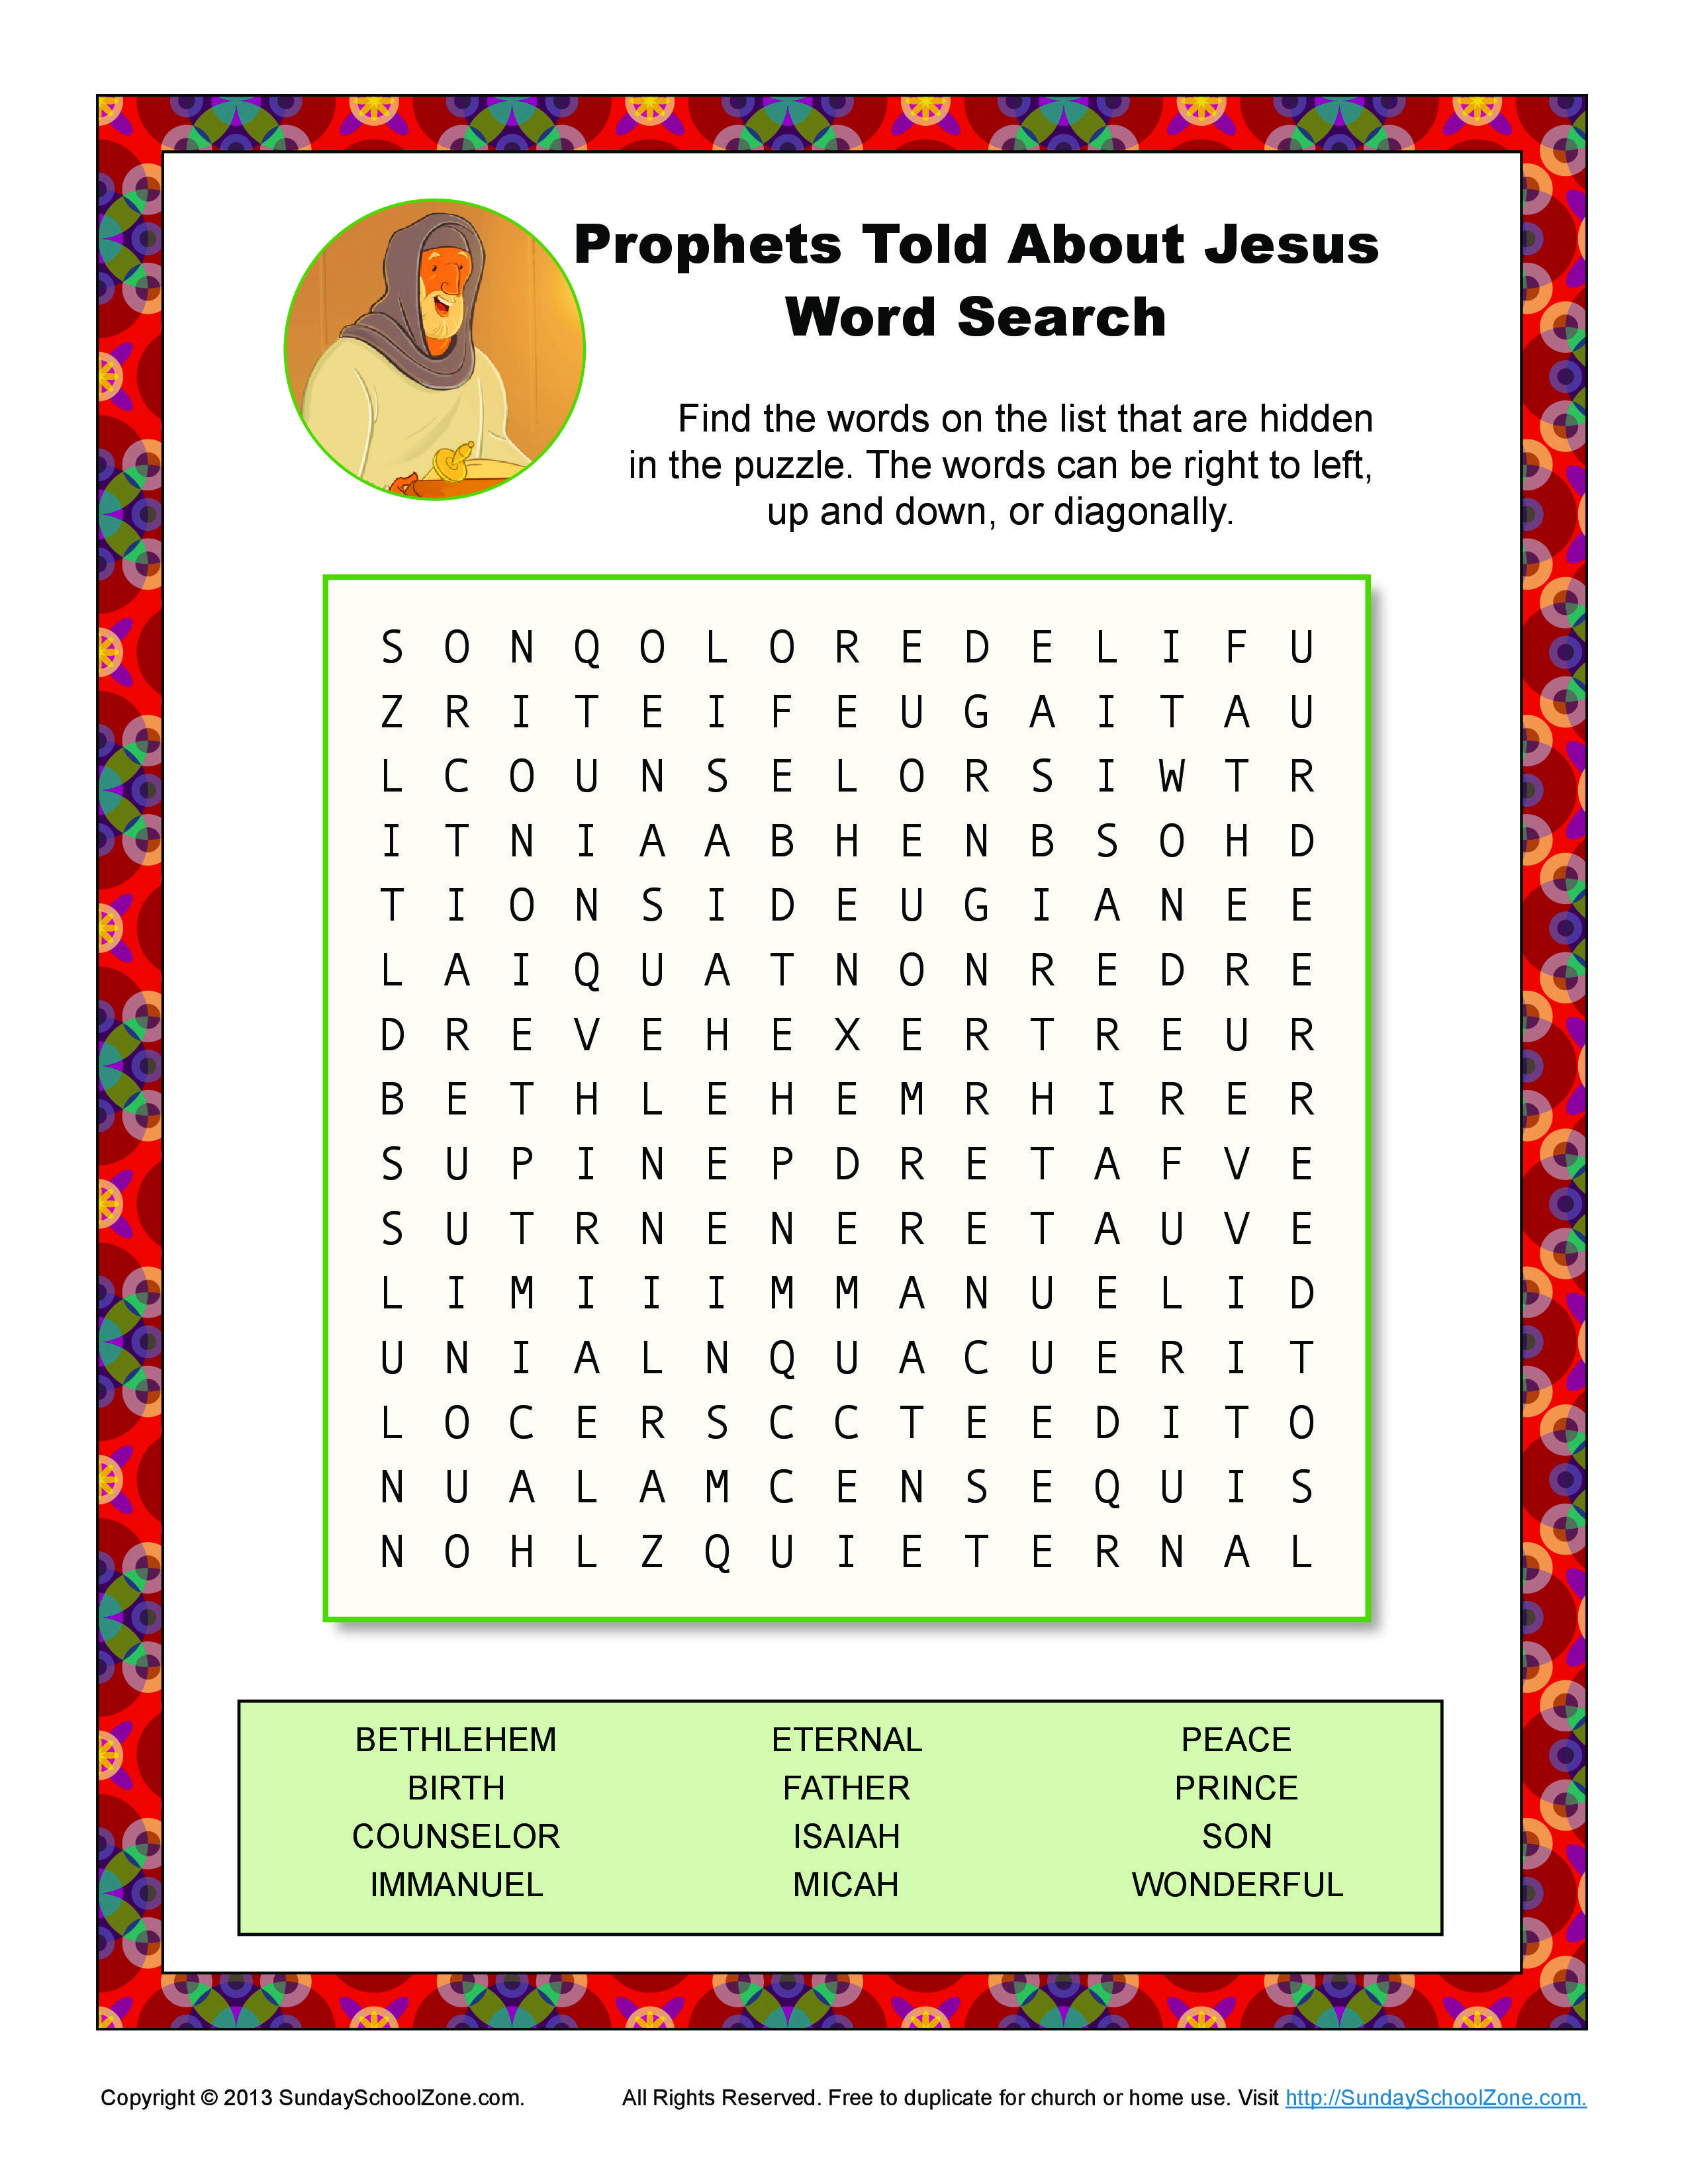 Prophets Told About Jesus Word Search